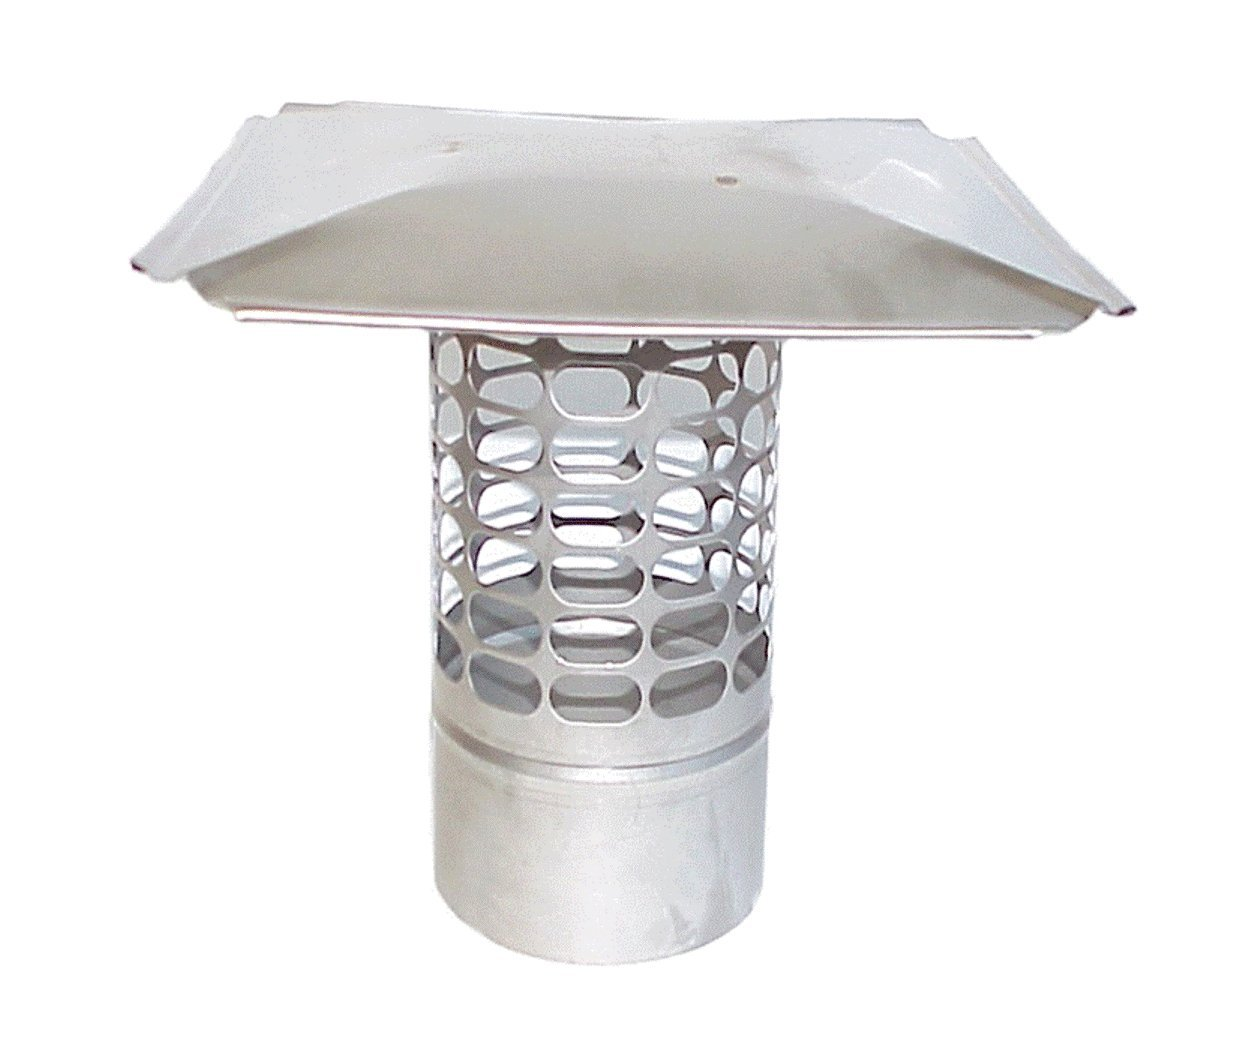 The Forever Cap CCSS10R 10-Inch Stainless Steel Slip in Round Chimney Cap